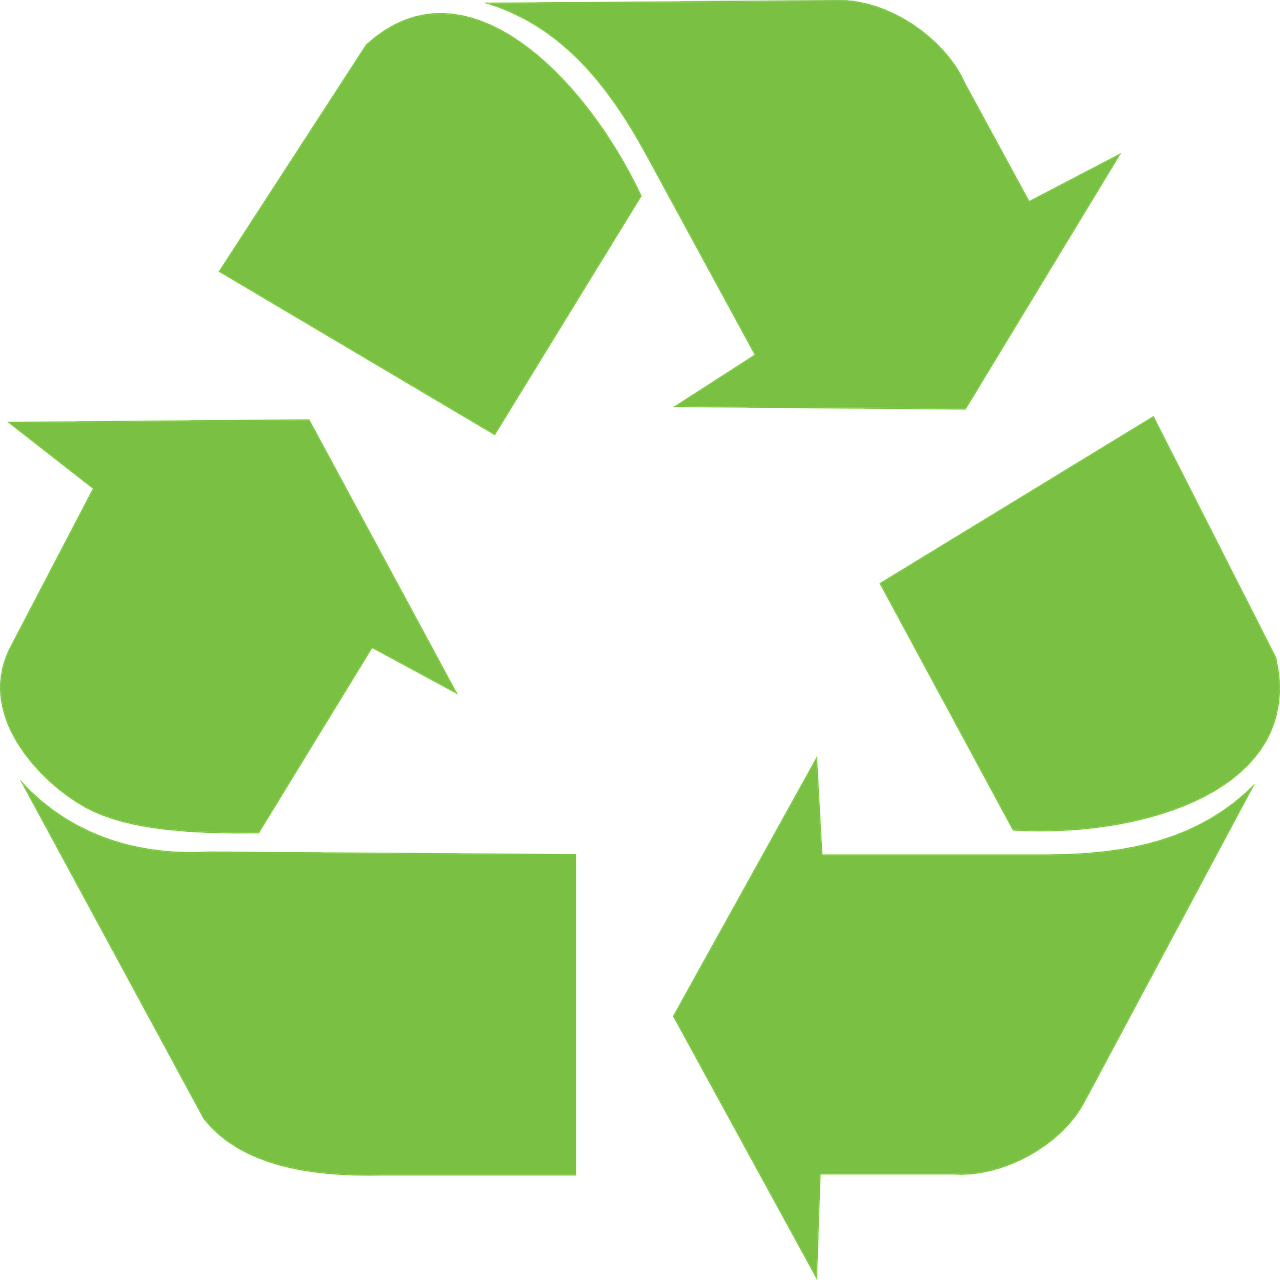 Recycle Logo Vinyl Sticker Decal Be Environmentally Friendly Buy 1 get 1 Free